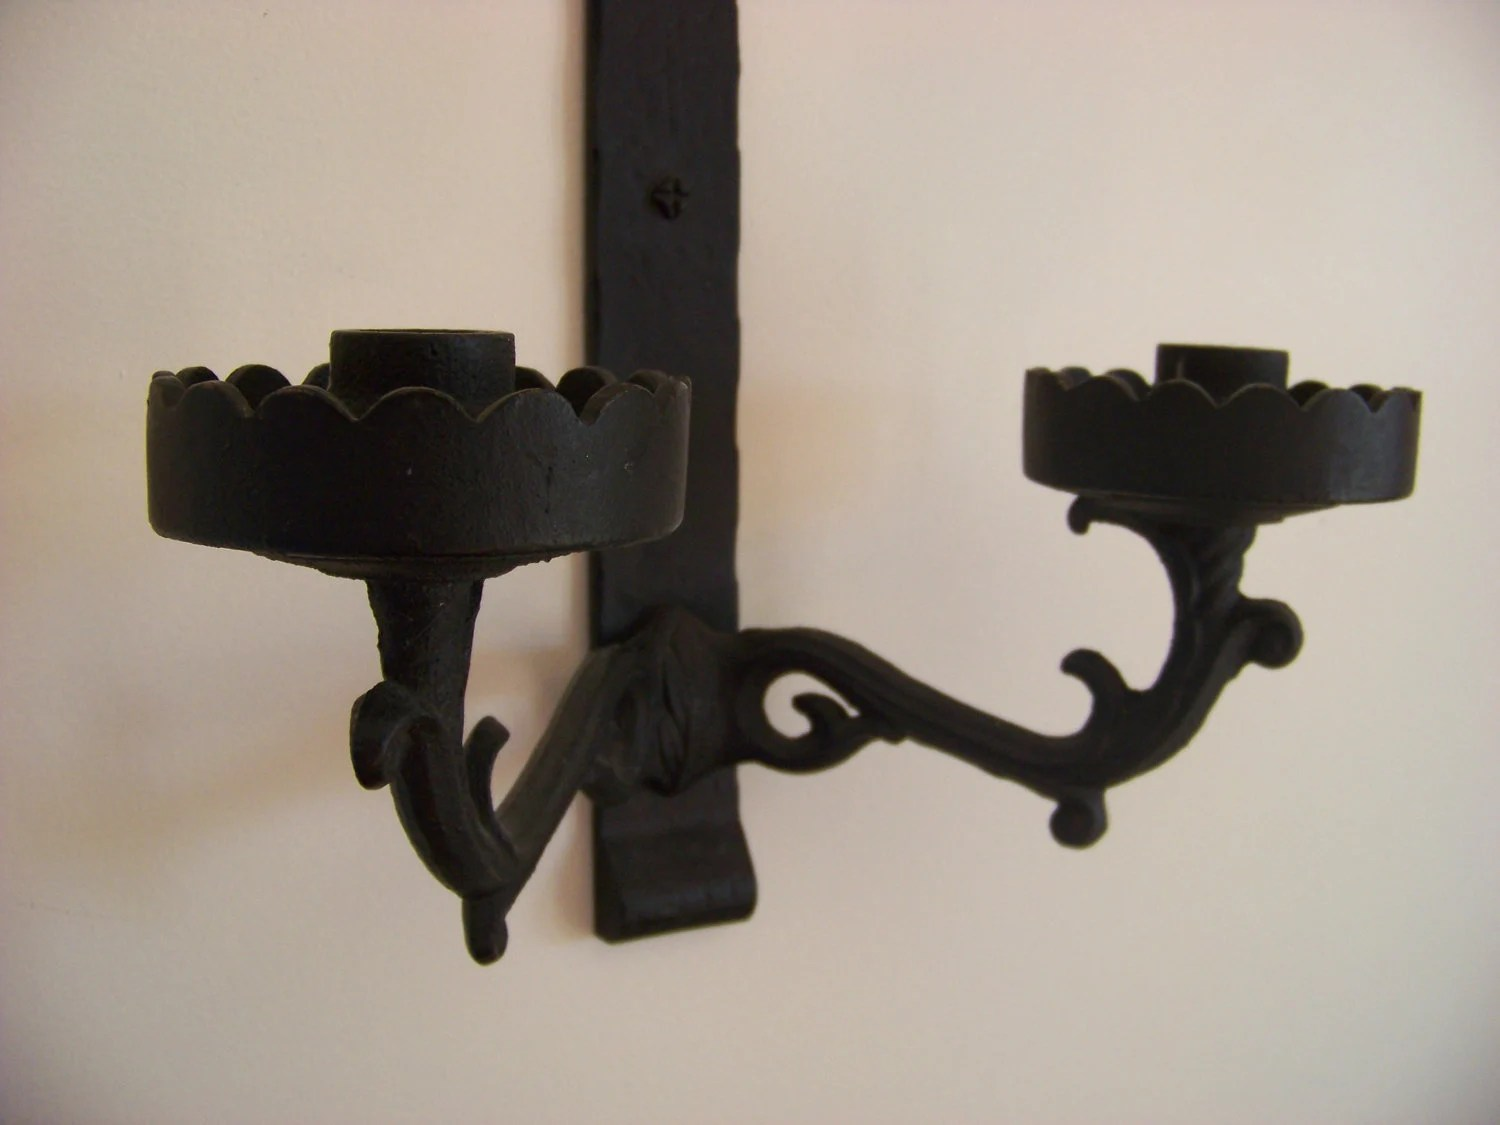 Black Wrought Iron Candle Holder / Wall Hanging by DoesMeadow on Black Wrought Iron Wall Candle Holders id=20593